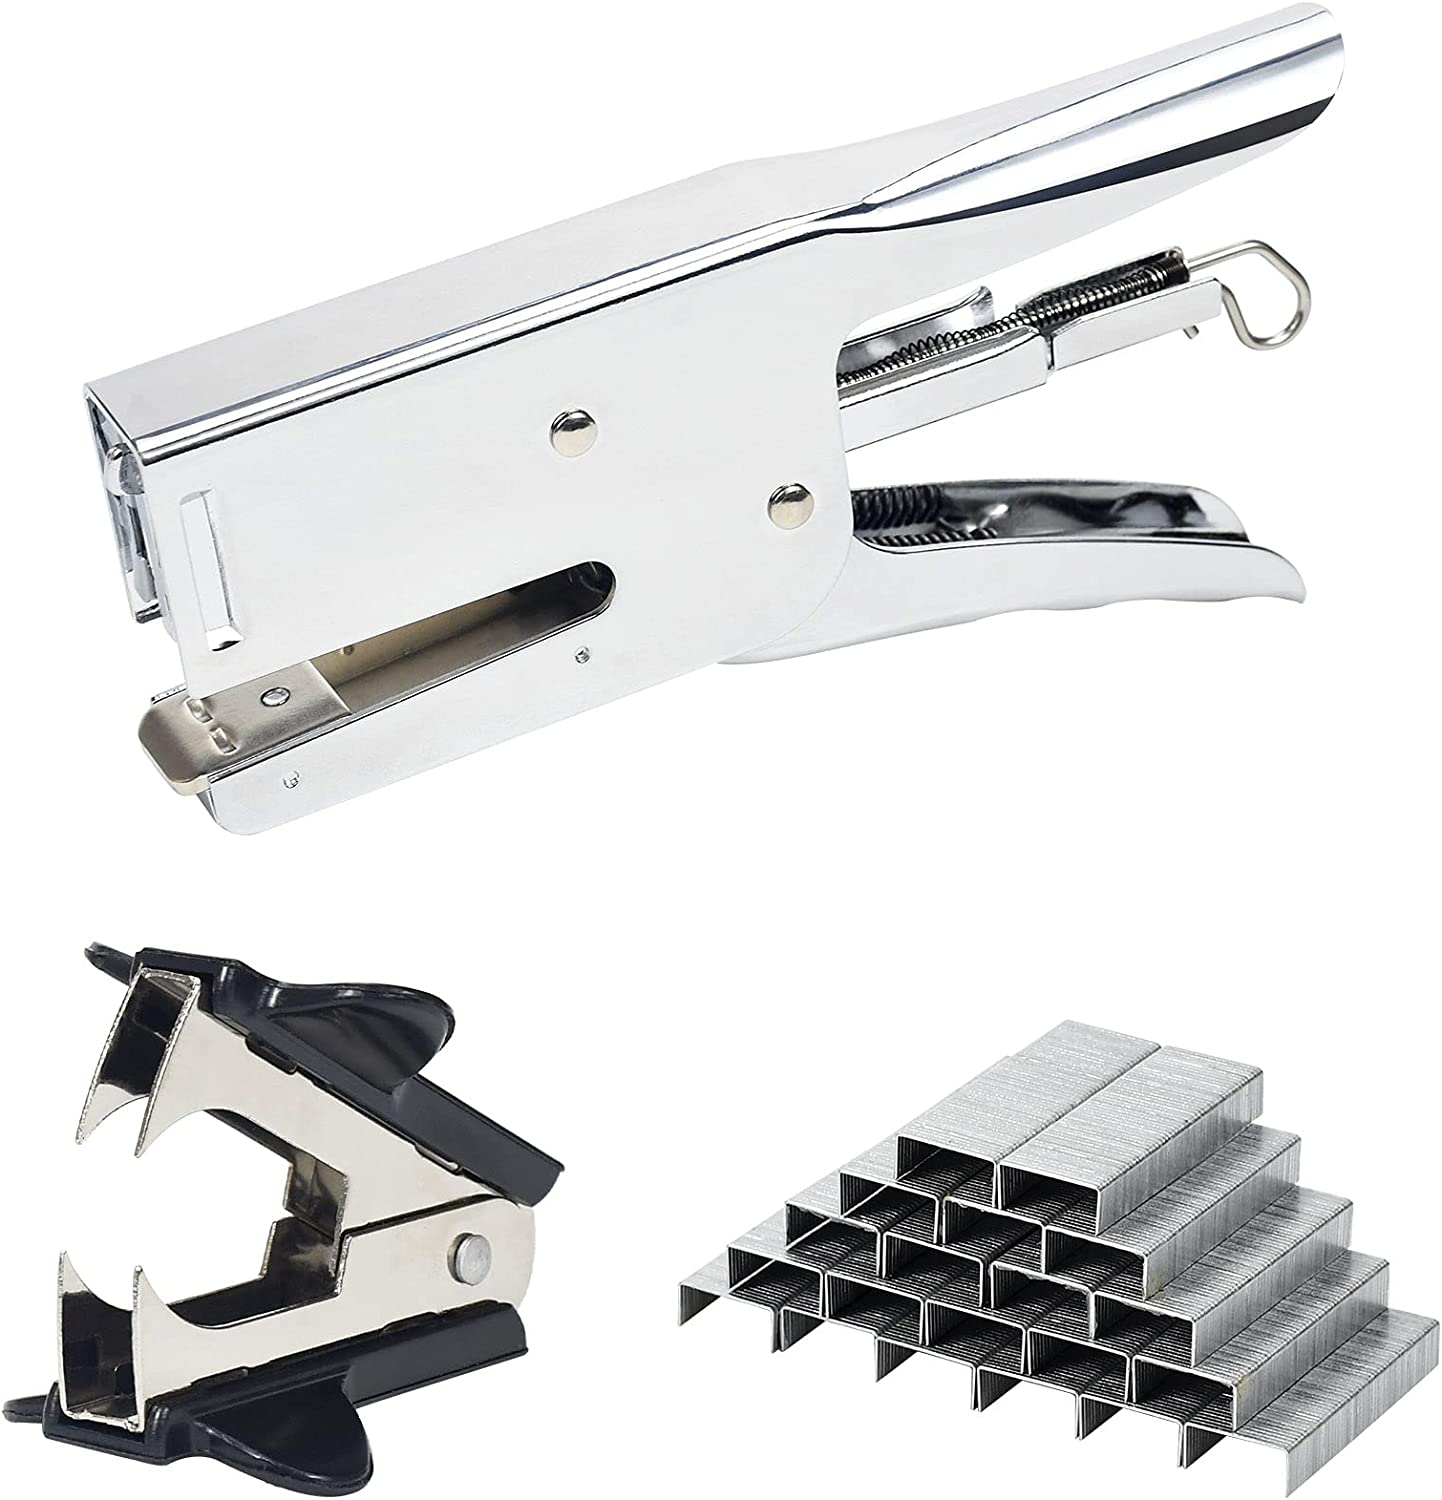 """Weibo Packaging Plier Stapler, Uses 26 and 24 Type 1/4""""- 5/16"""" Staples, 40-45 Sheet Capacity, Metal staplers for Desk, Includes 2000 Staples and Staple Remover (Sliver) : Office Products"""